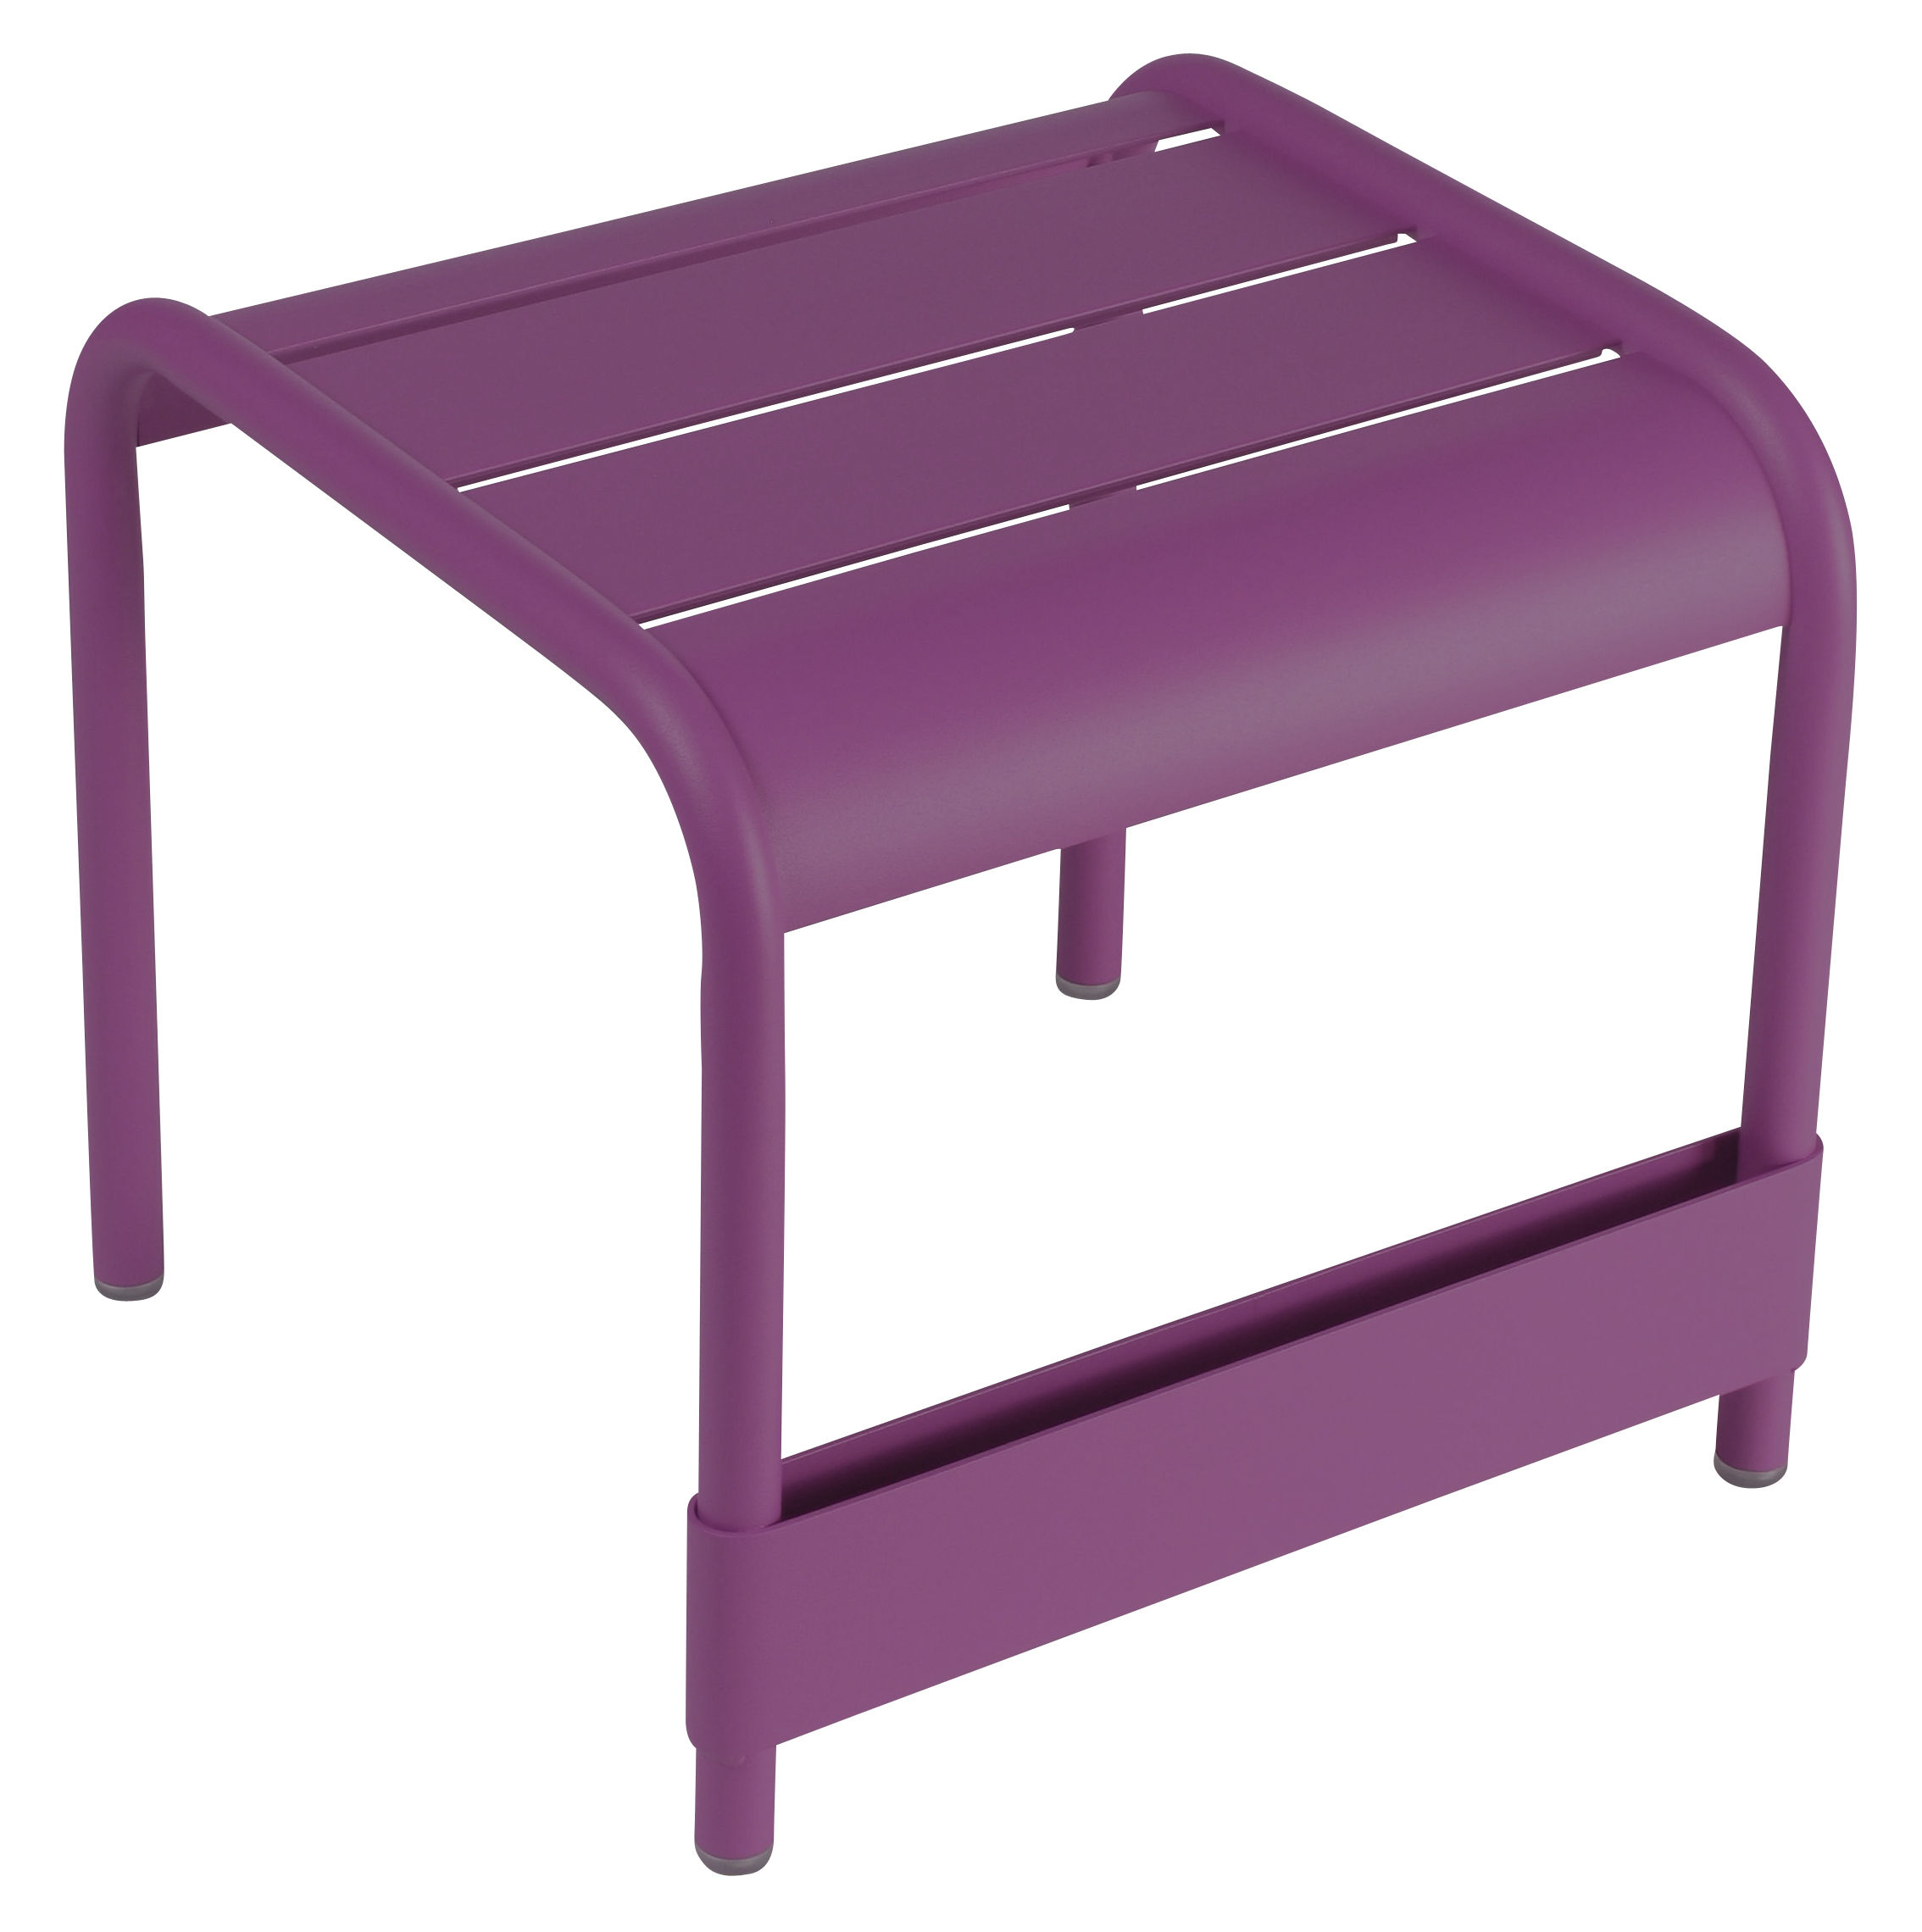 Luxembourg end table l 42 cm aubergine by fermob for Fermob luxembourg table